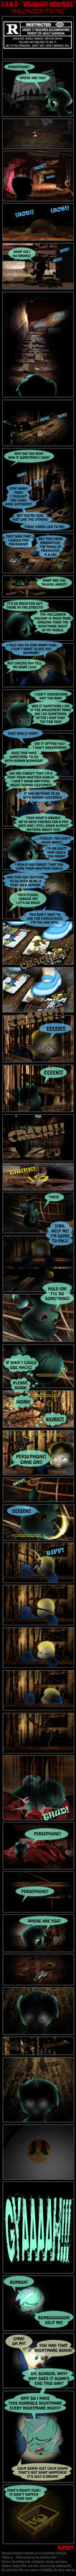 B.S.W.H.-Reliquary of Memories - Halloween Special by INVISIBLEGUY-PONYMAN